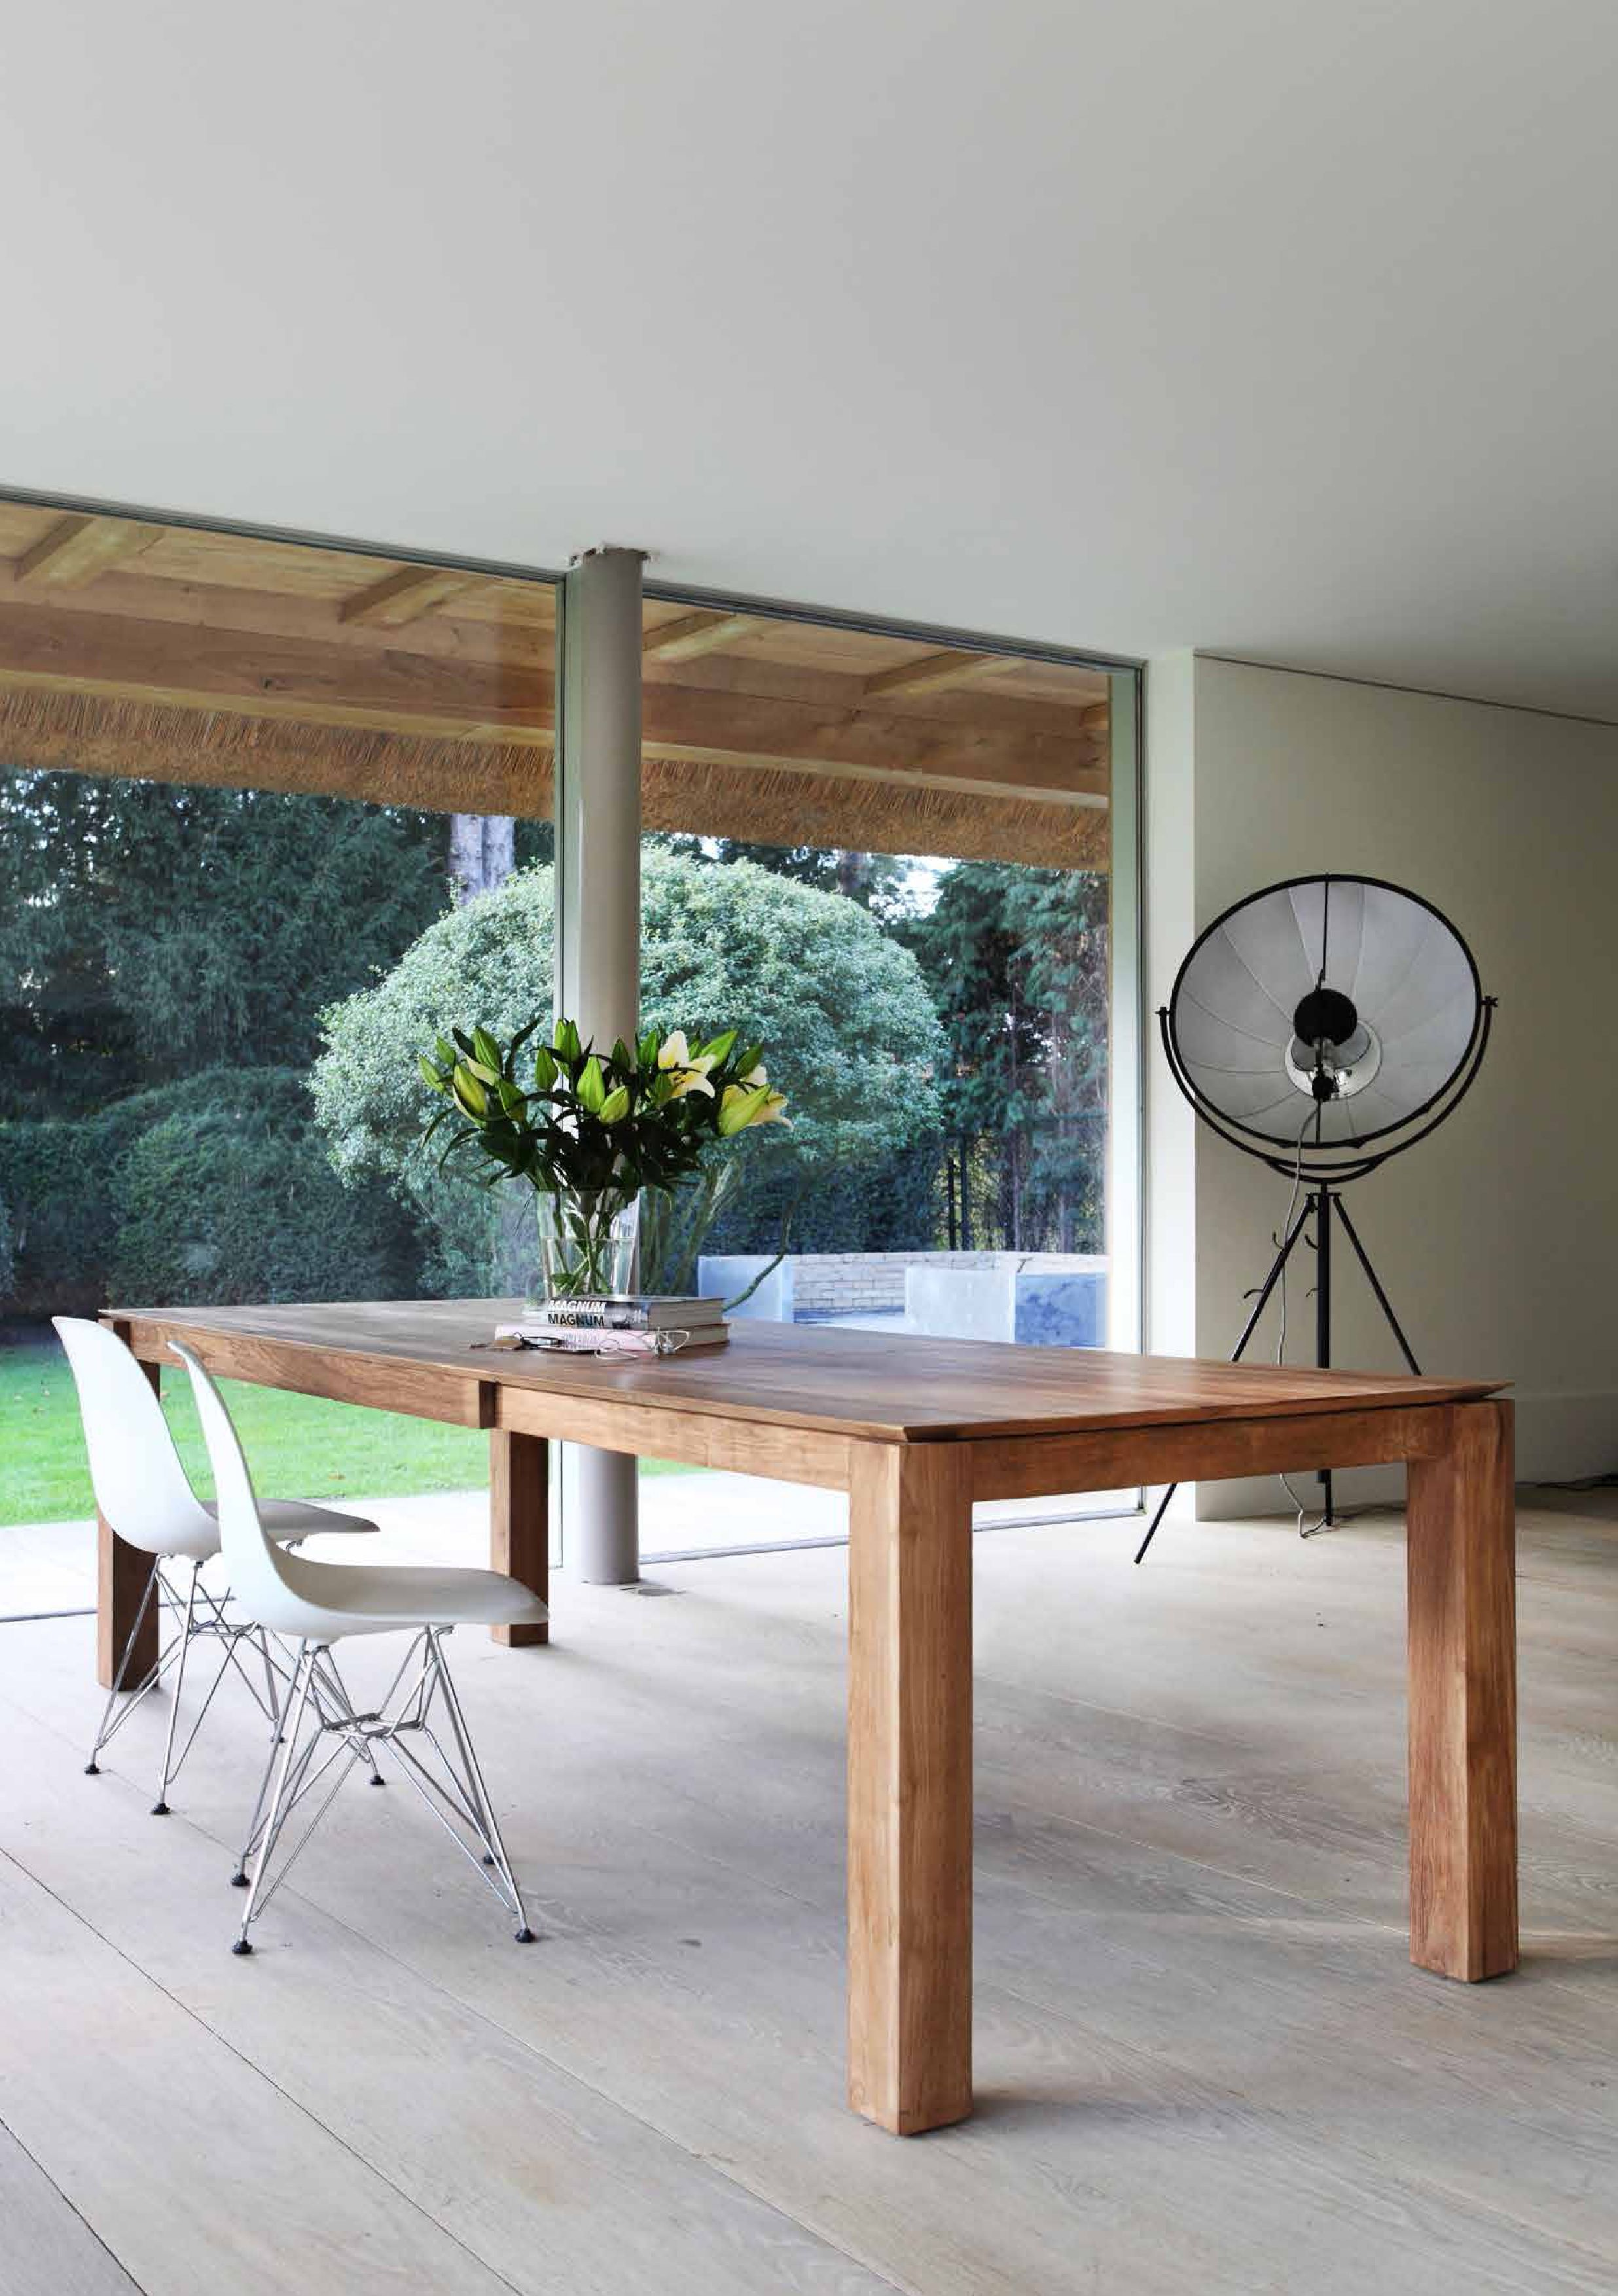 Teak Slice Extendable Dining Table Wonders In Wood By Ethnicraft Mobilier De Salle A Manger Meuble Salle A Manger Et Table A Manger En Chene